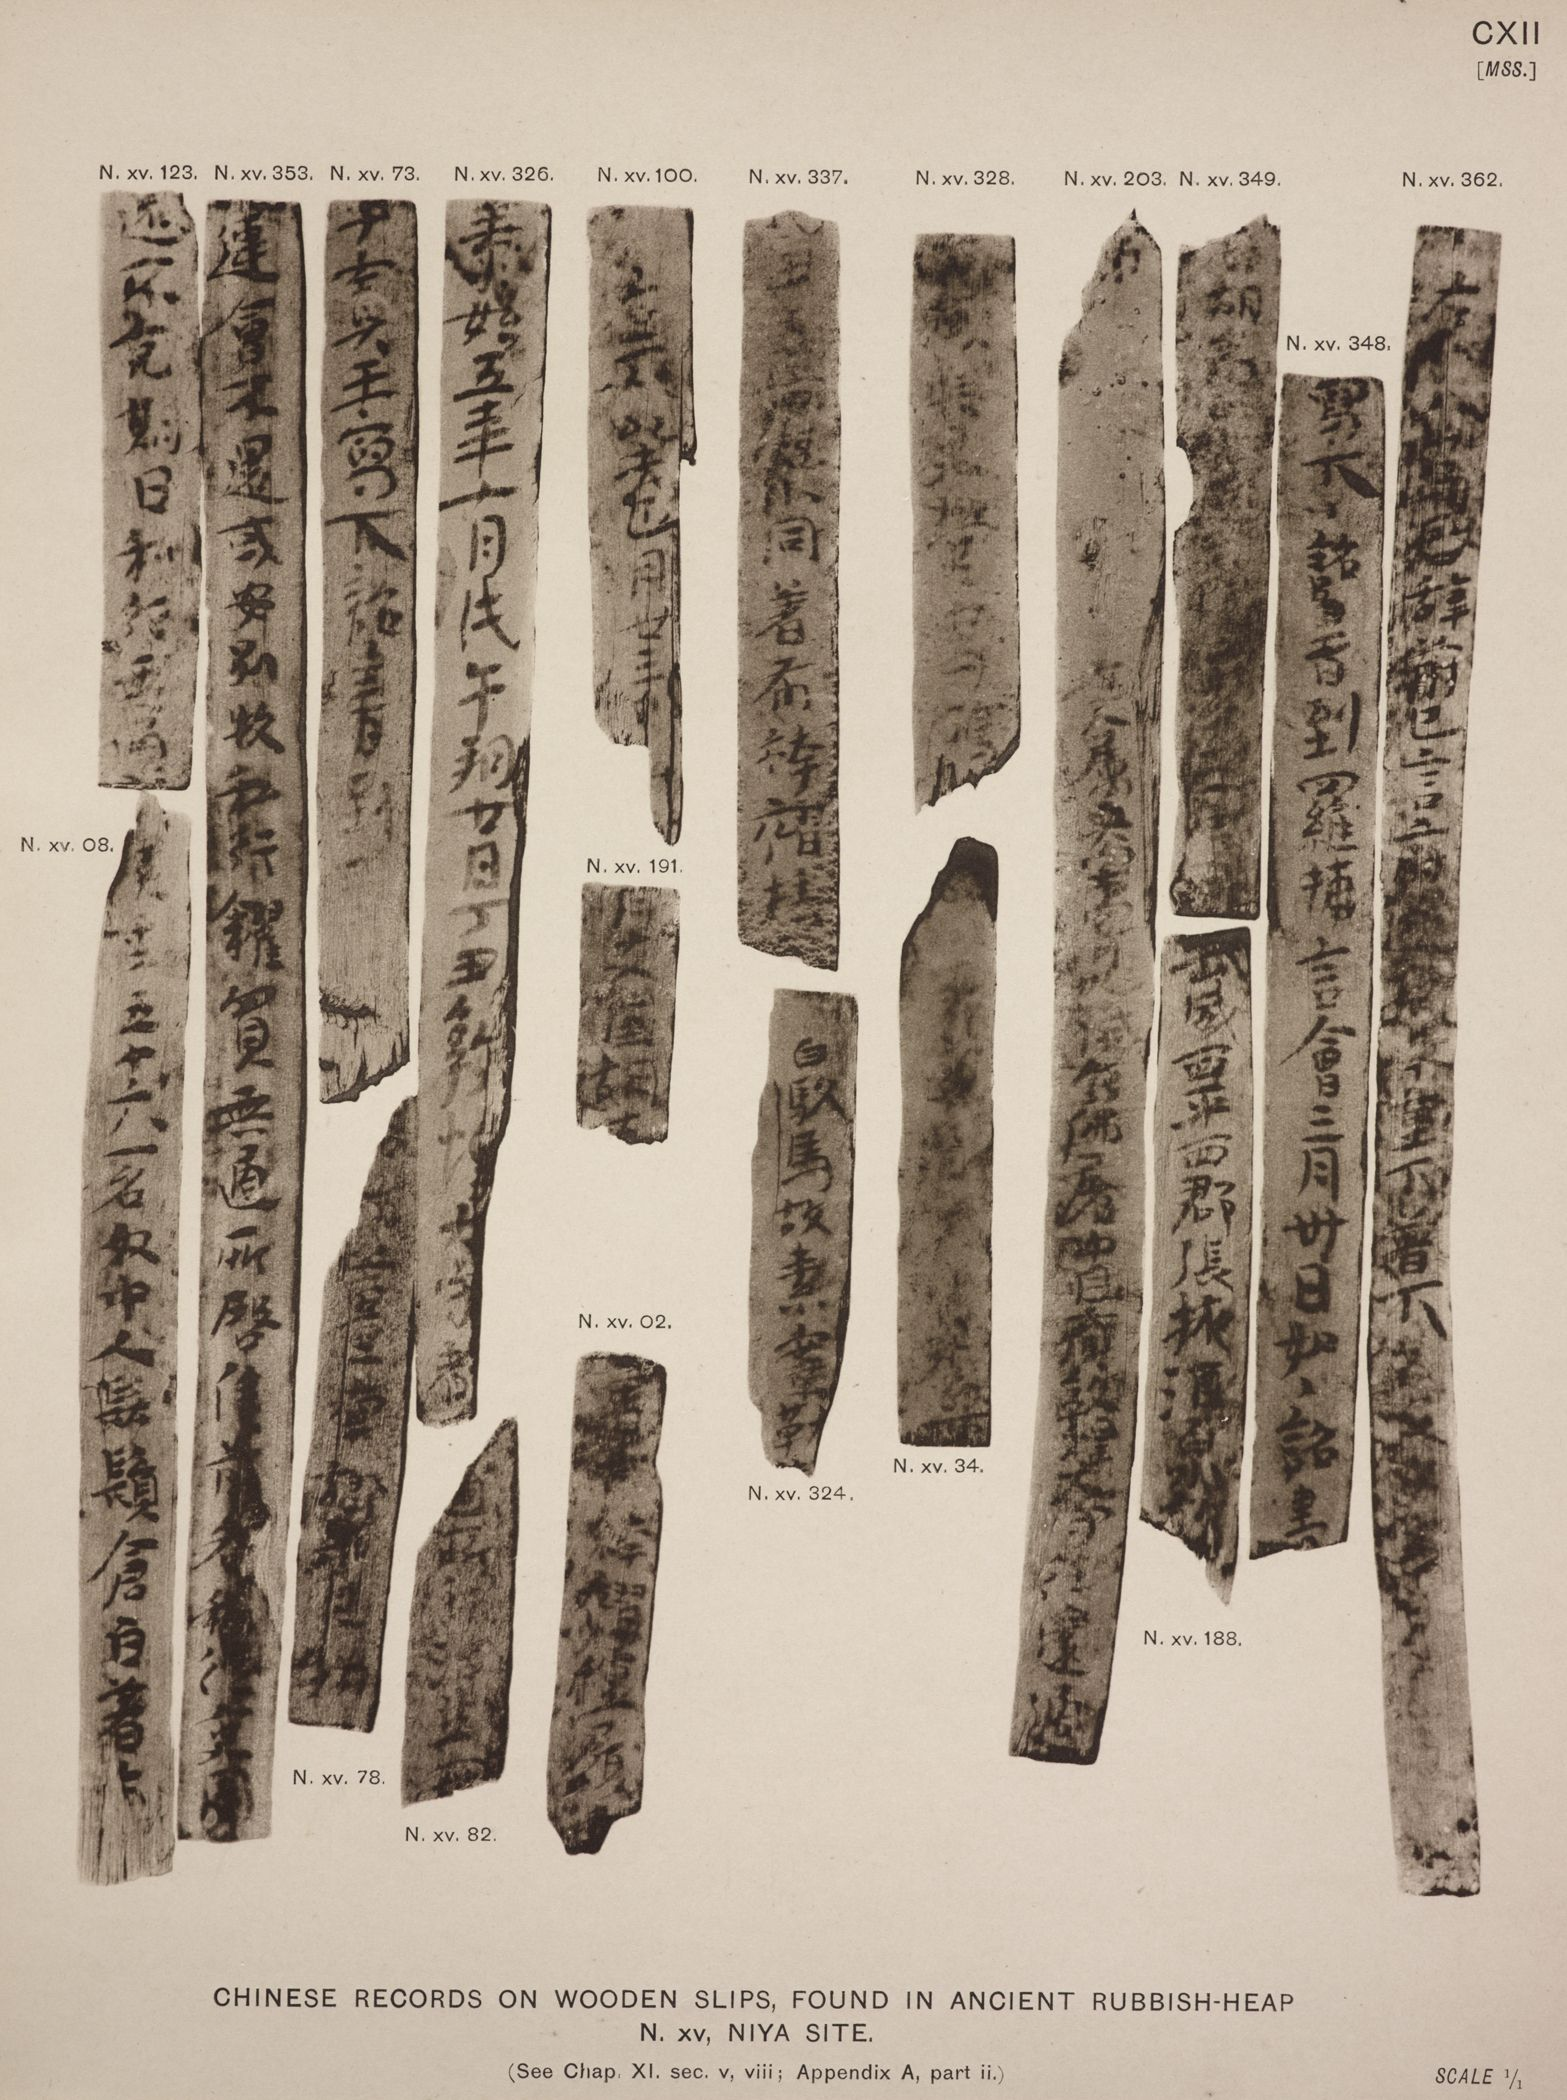 Chinese records on wooden slips, found in ancient rubbish-heap N. XV, Niya site. (See Chap. XI, sec. v, viii; Appendix A, part ii.)